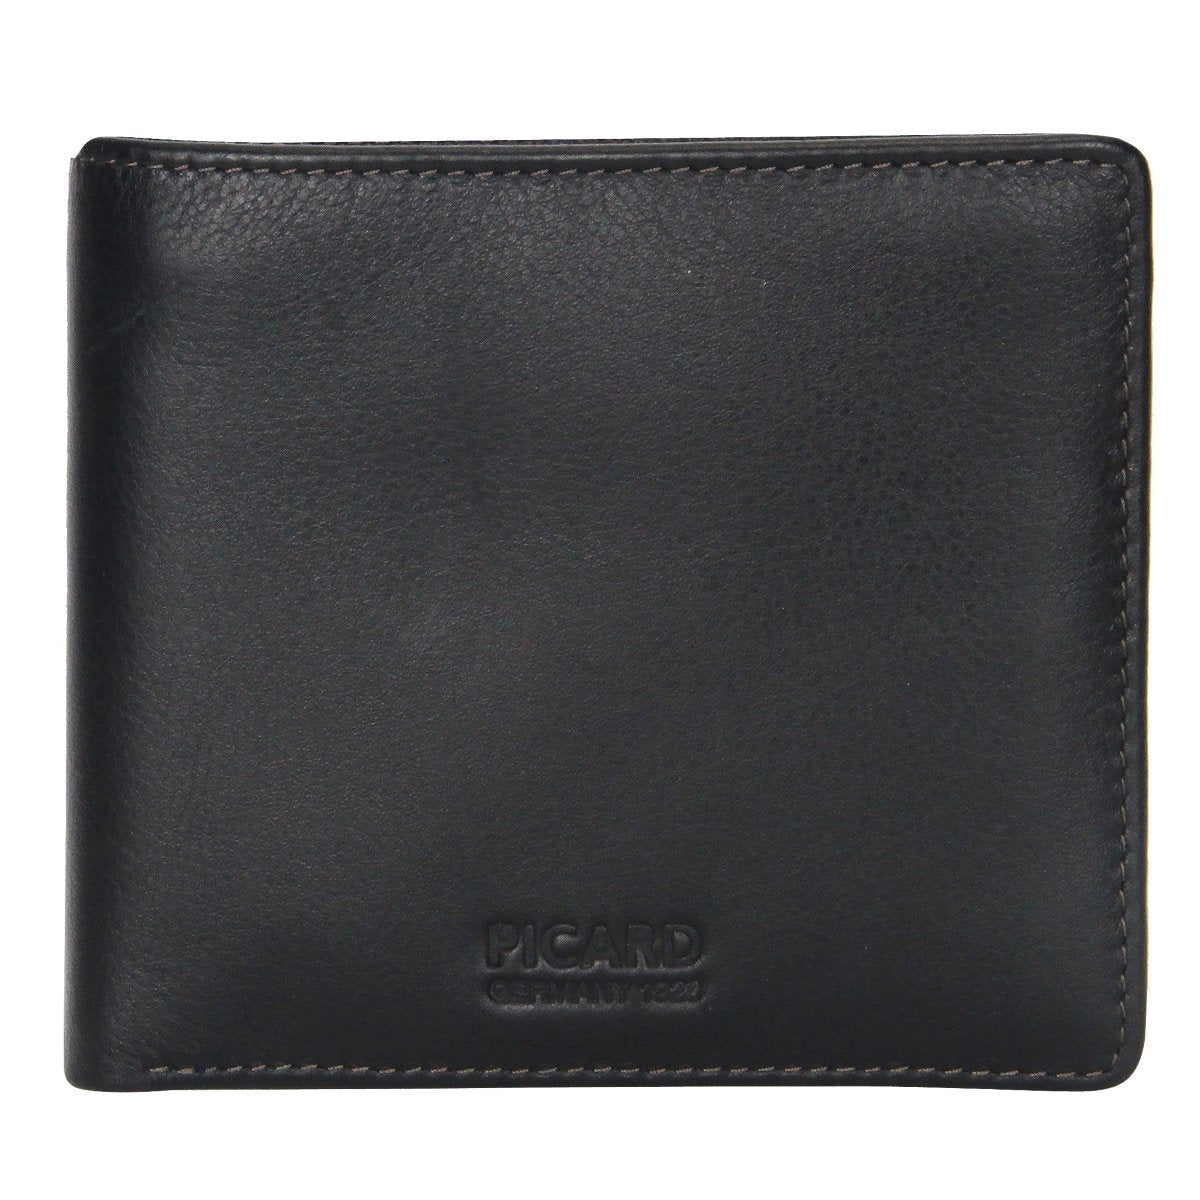 Picard Brooklyn Wallet With Zip Compartment 004283